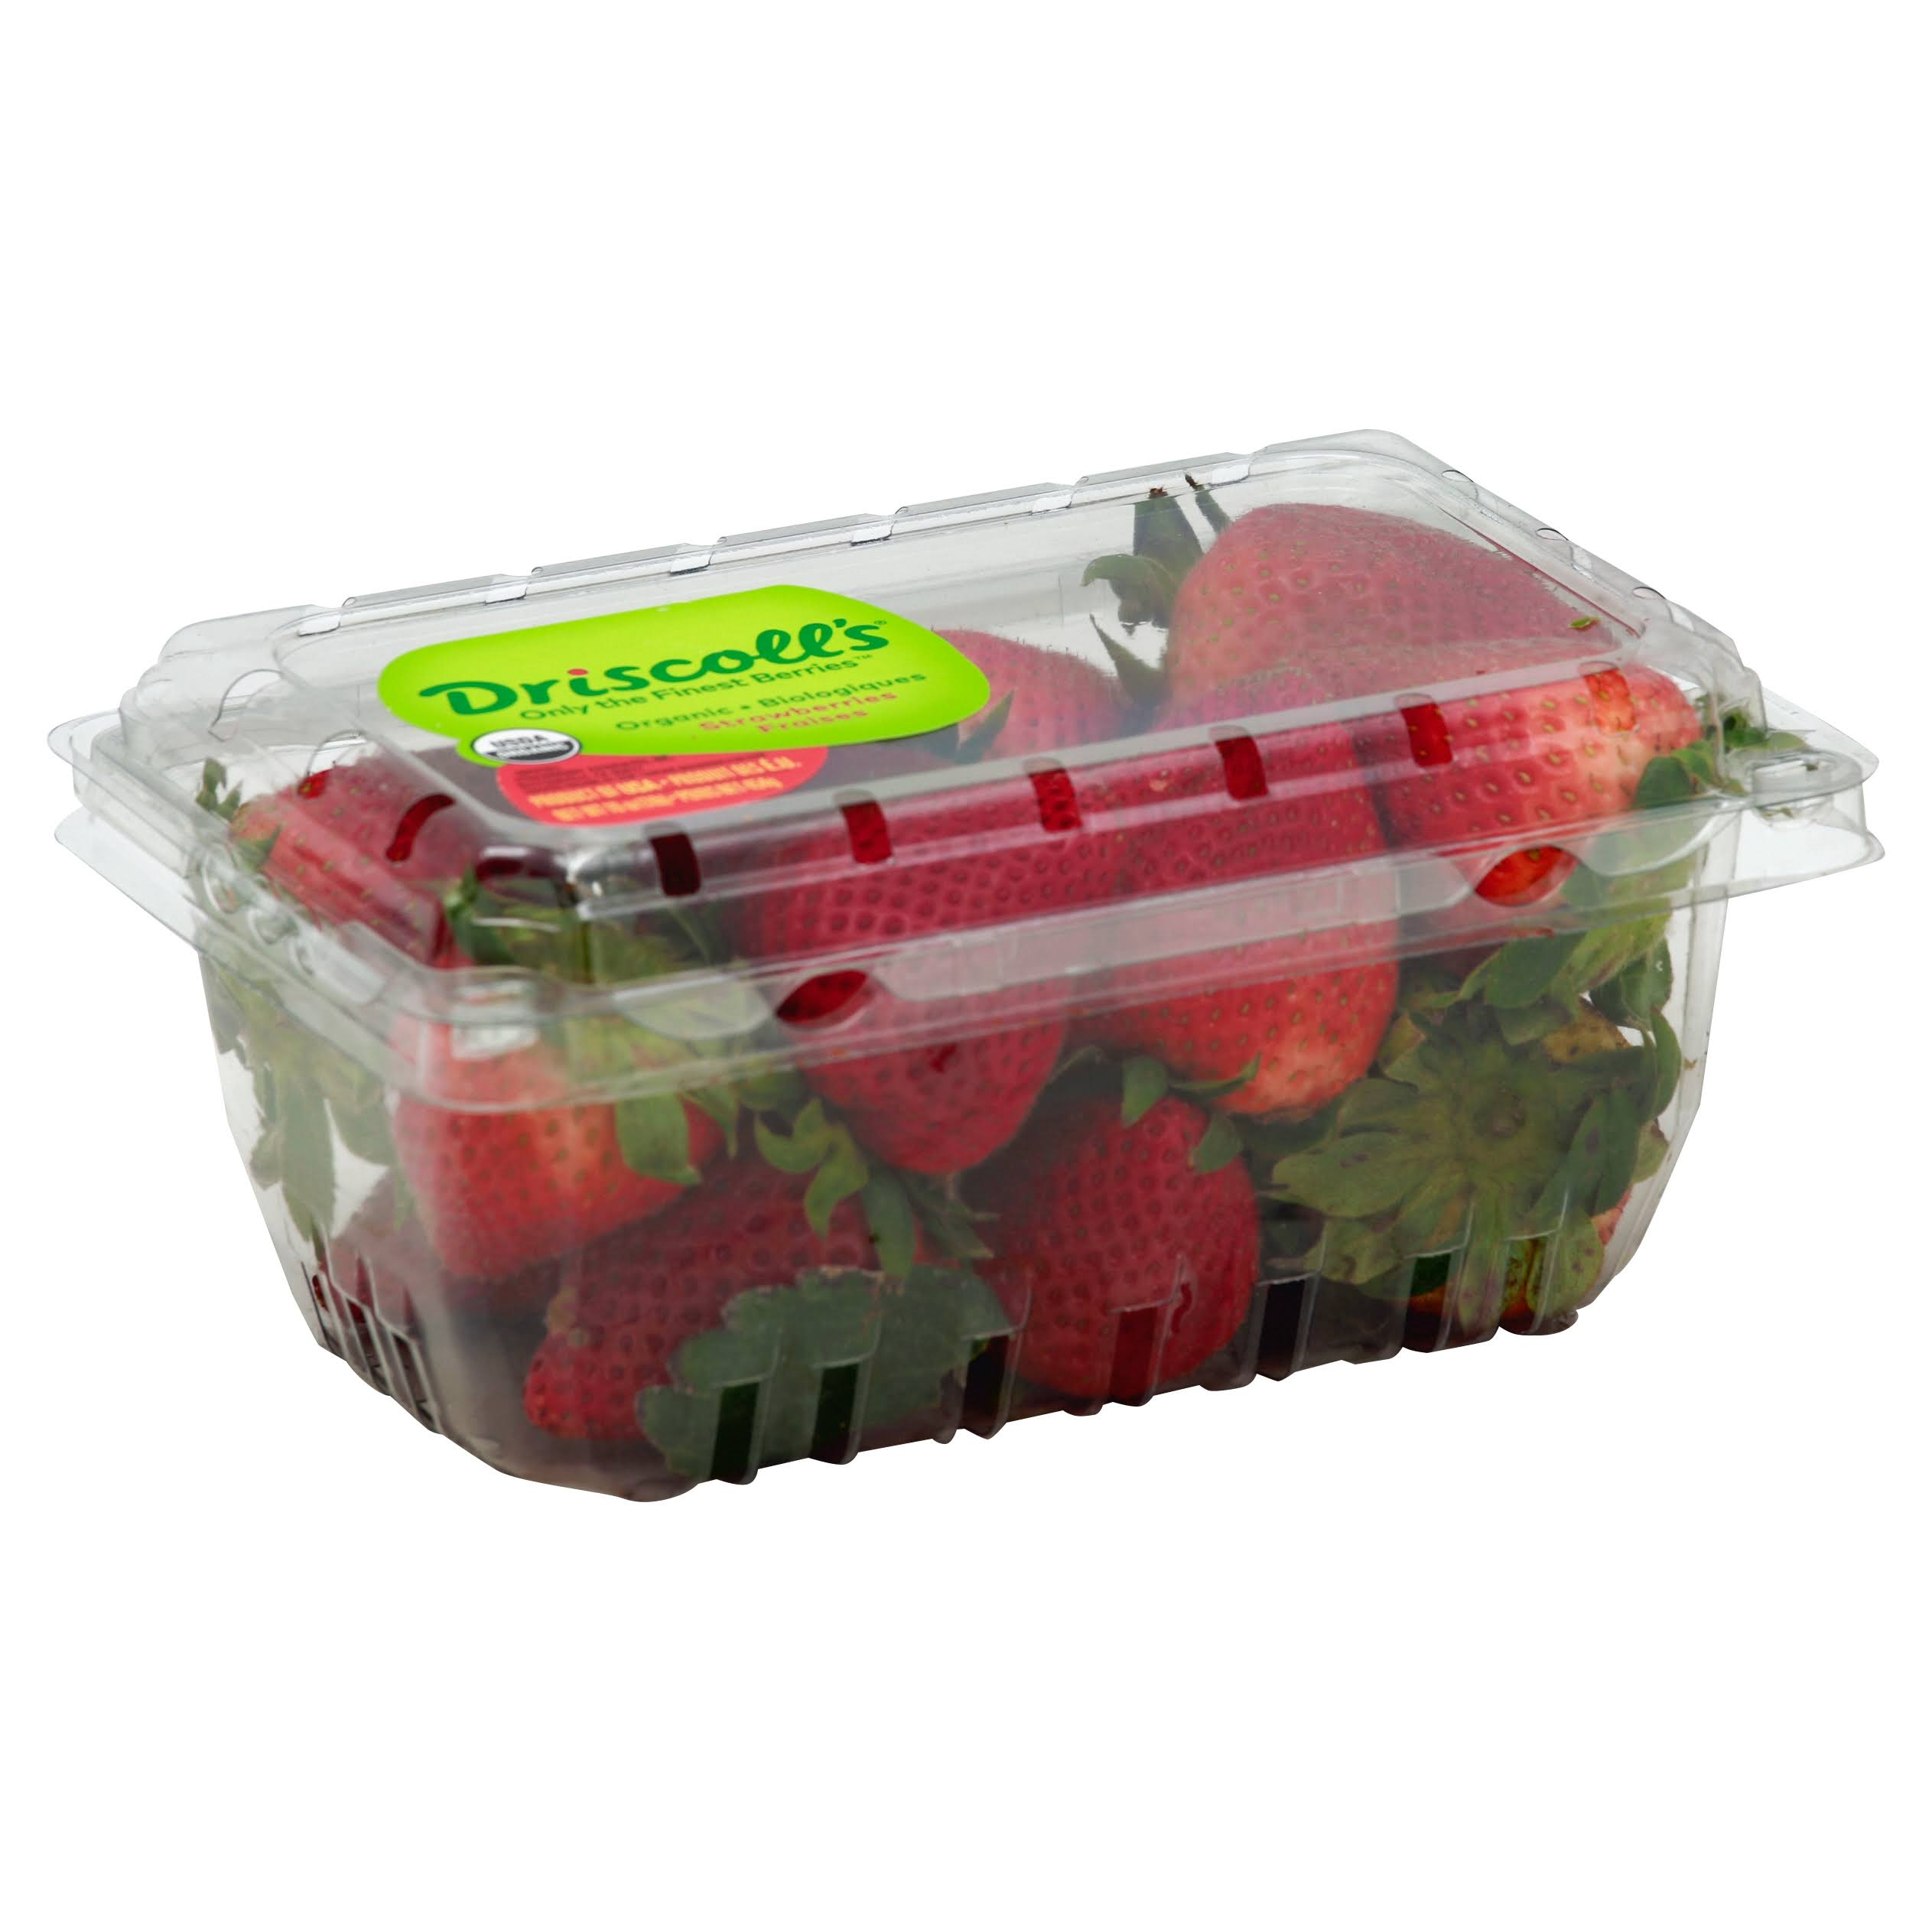 Driscolls Strawberries, Organic - 16 oz